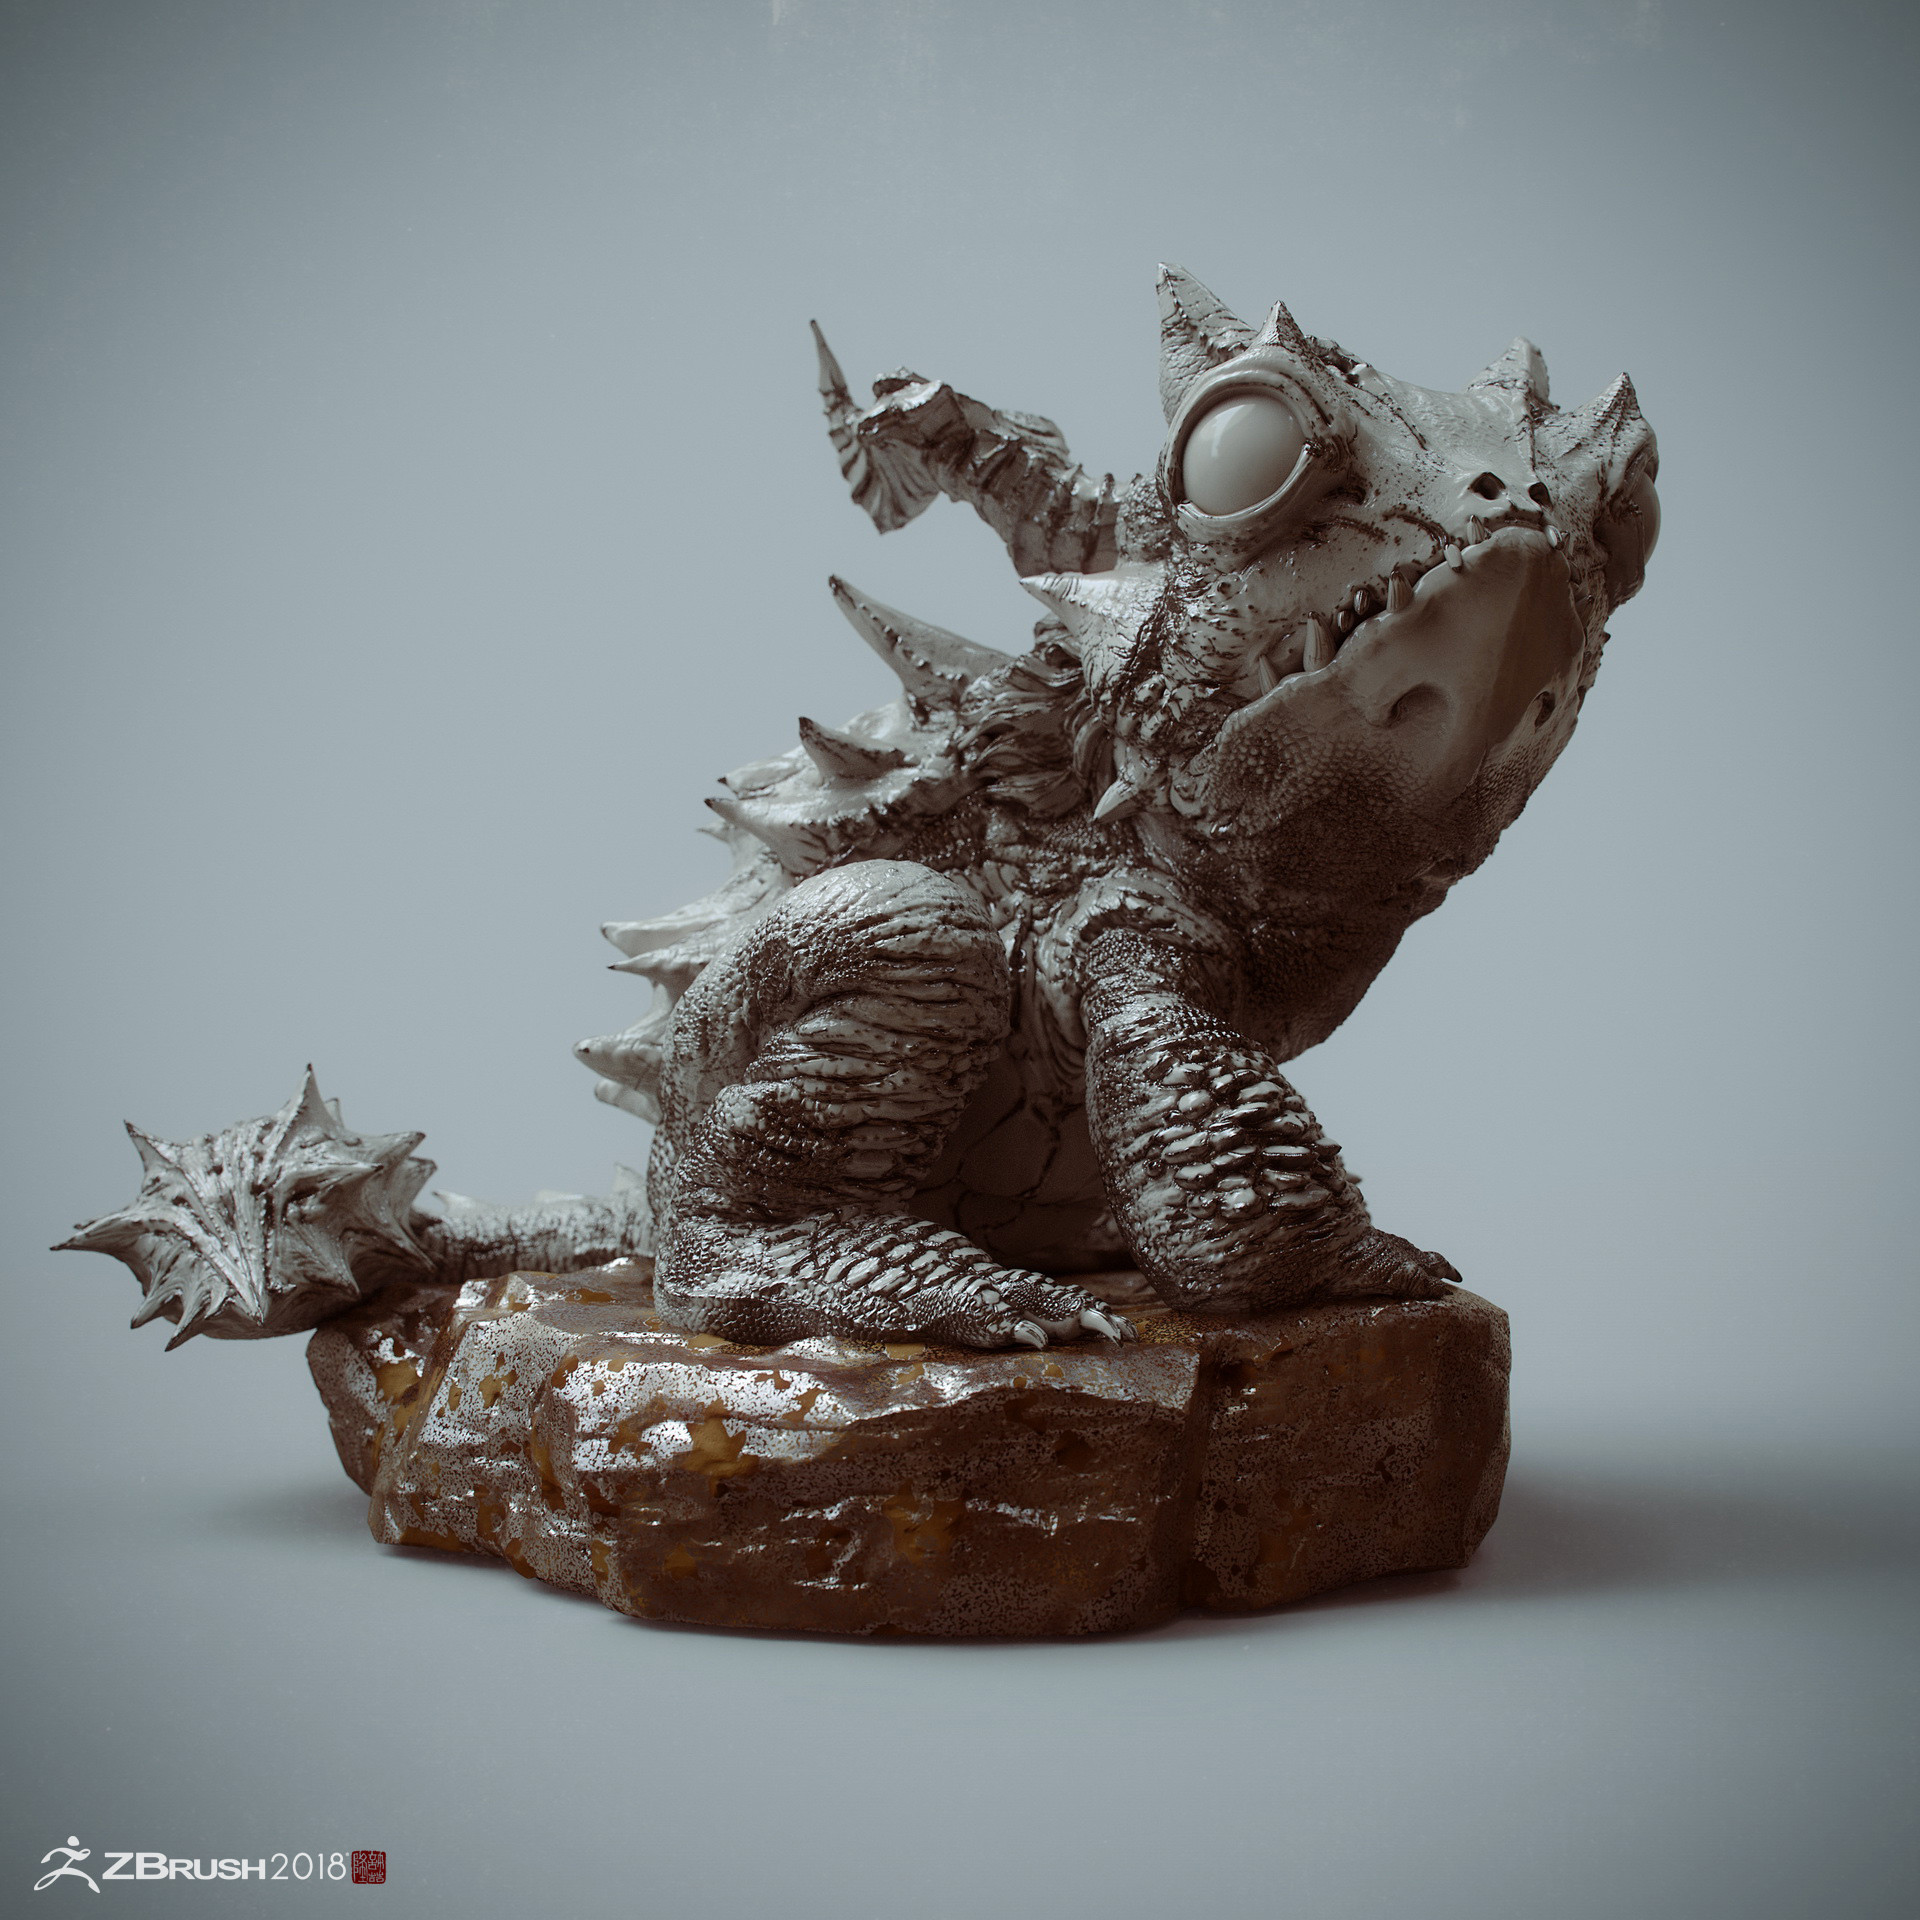 Zhelong xu the kirin frog002